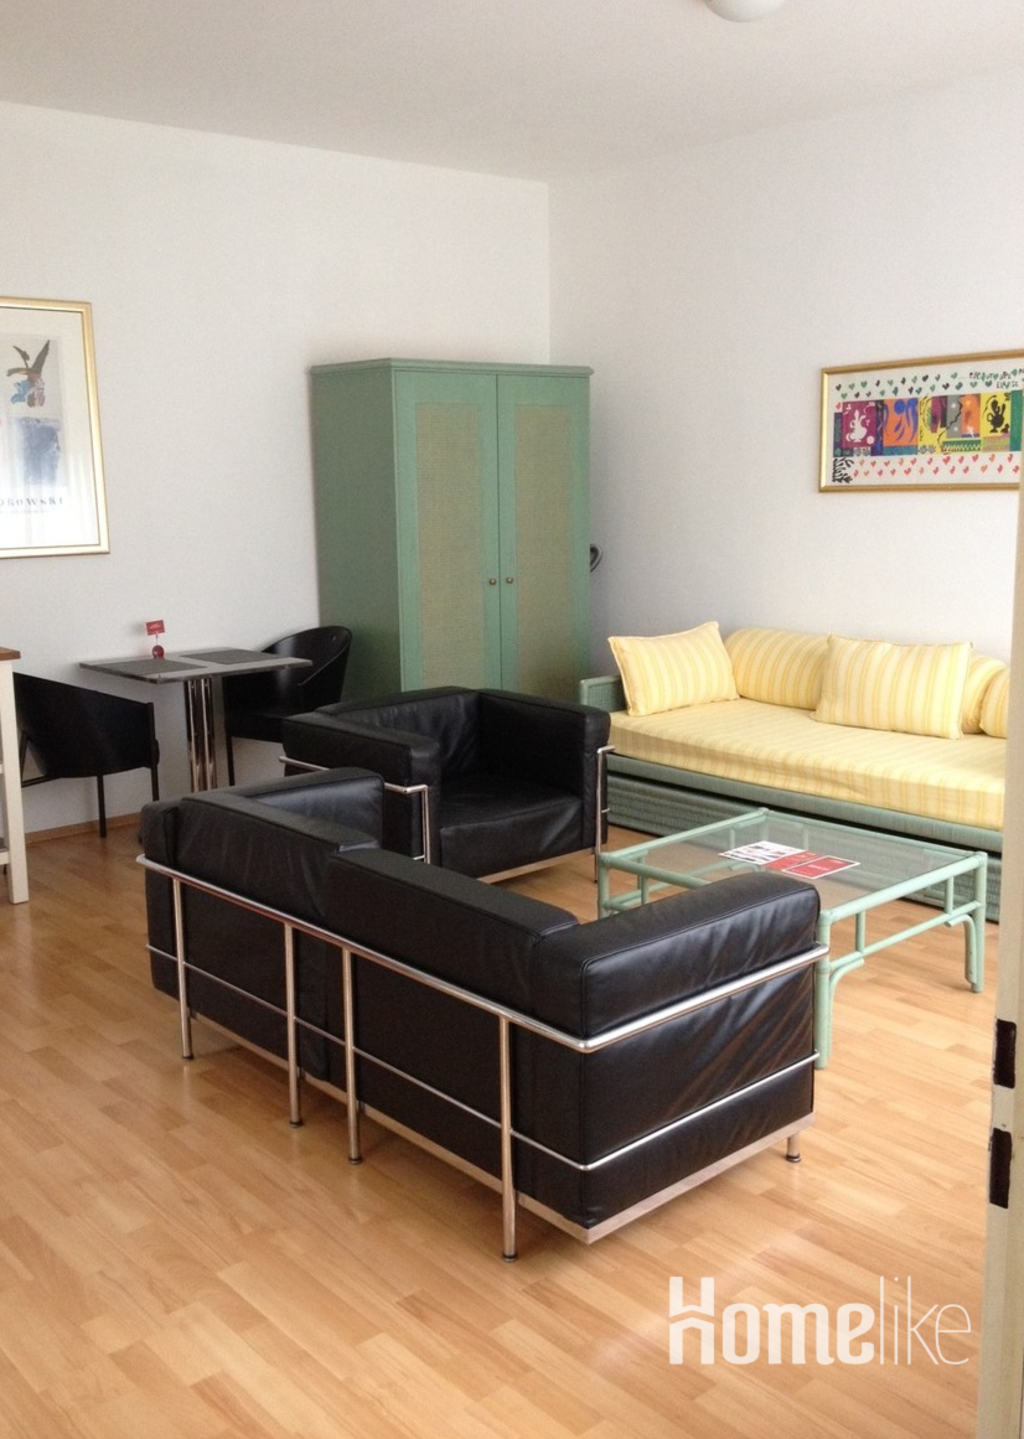 image 6 furnished 1 bedroom Apartment for rent in Spandau, Spandau